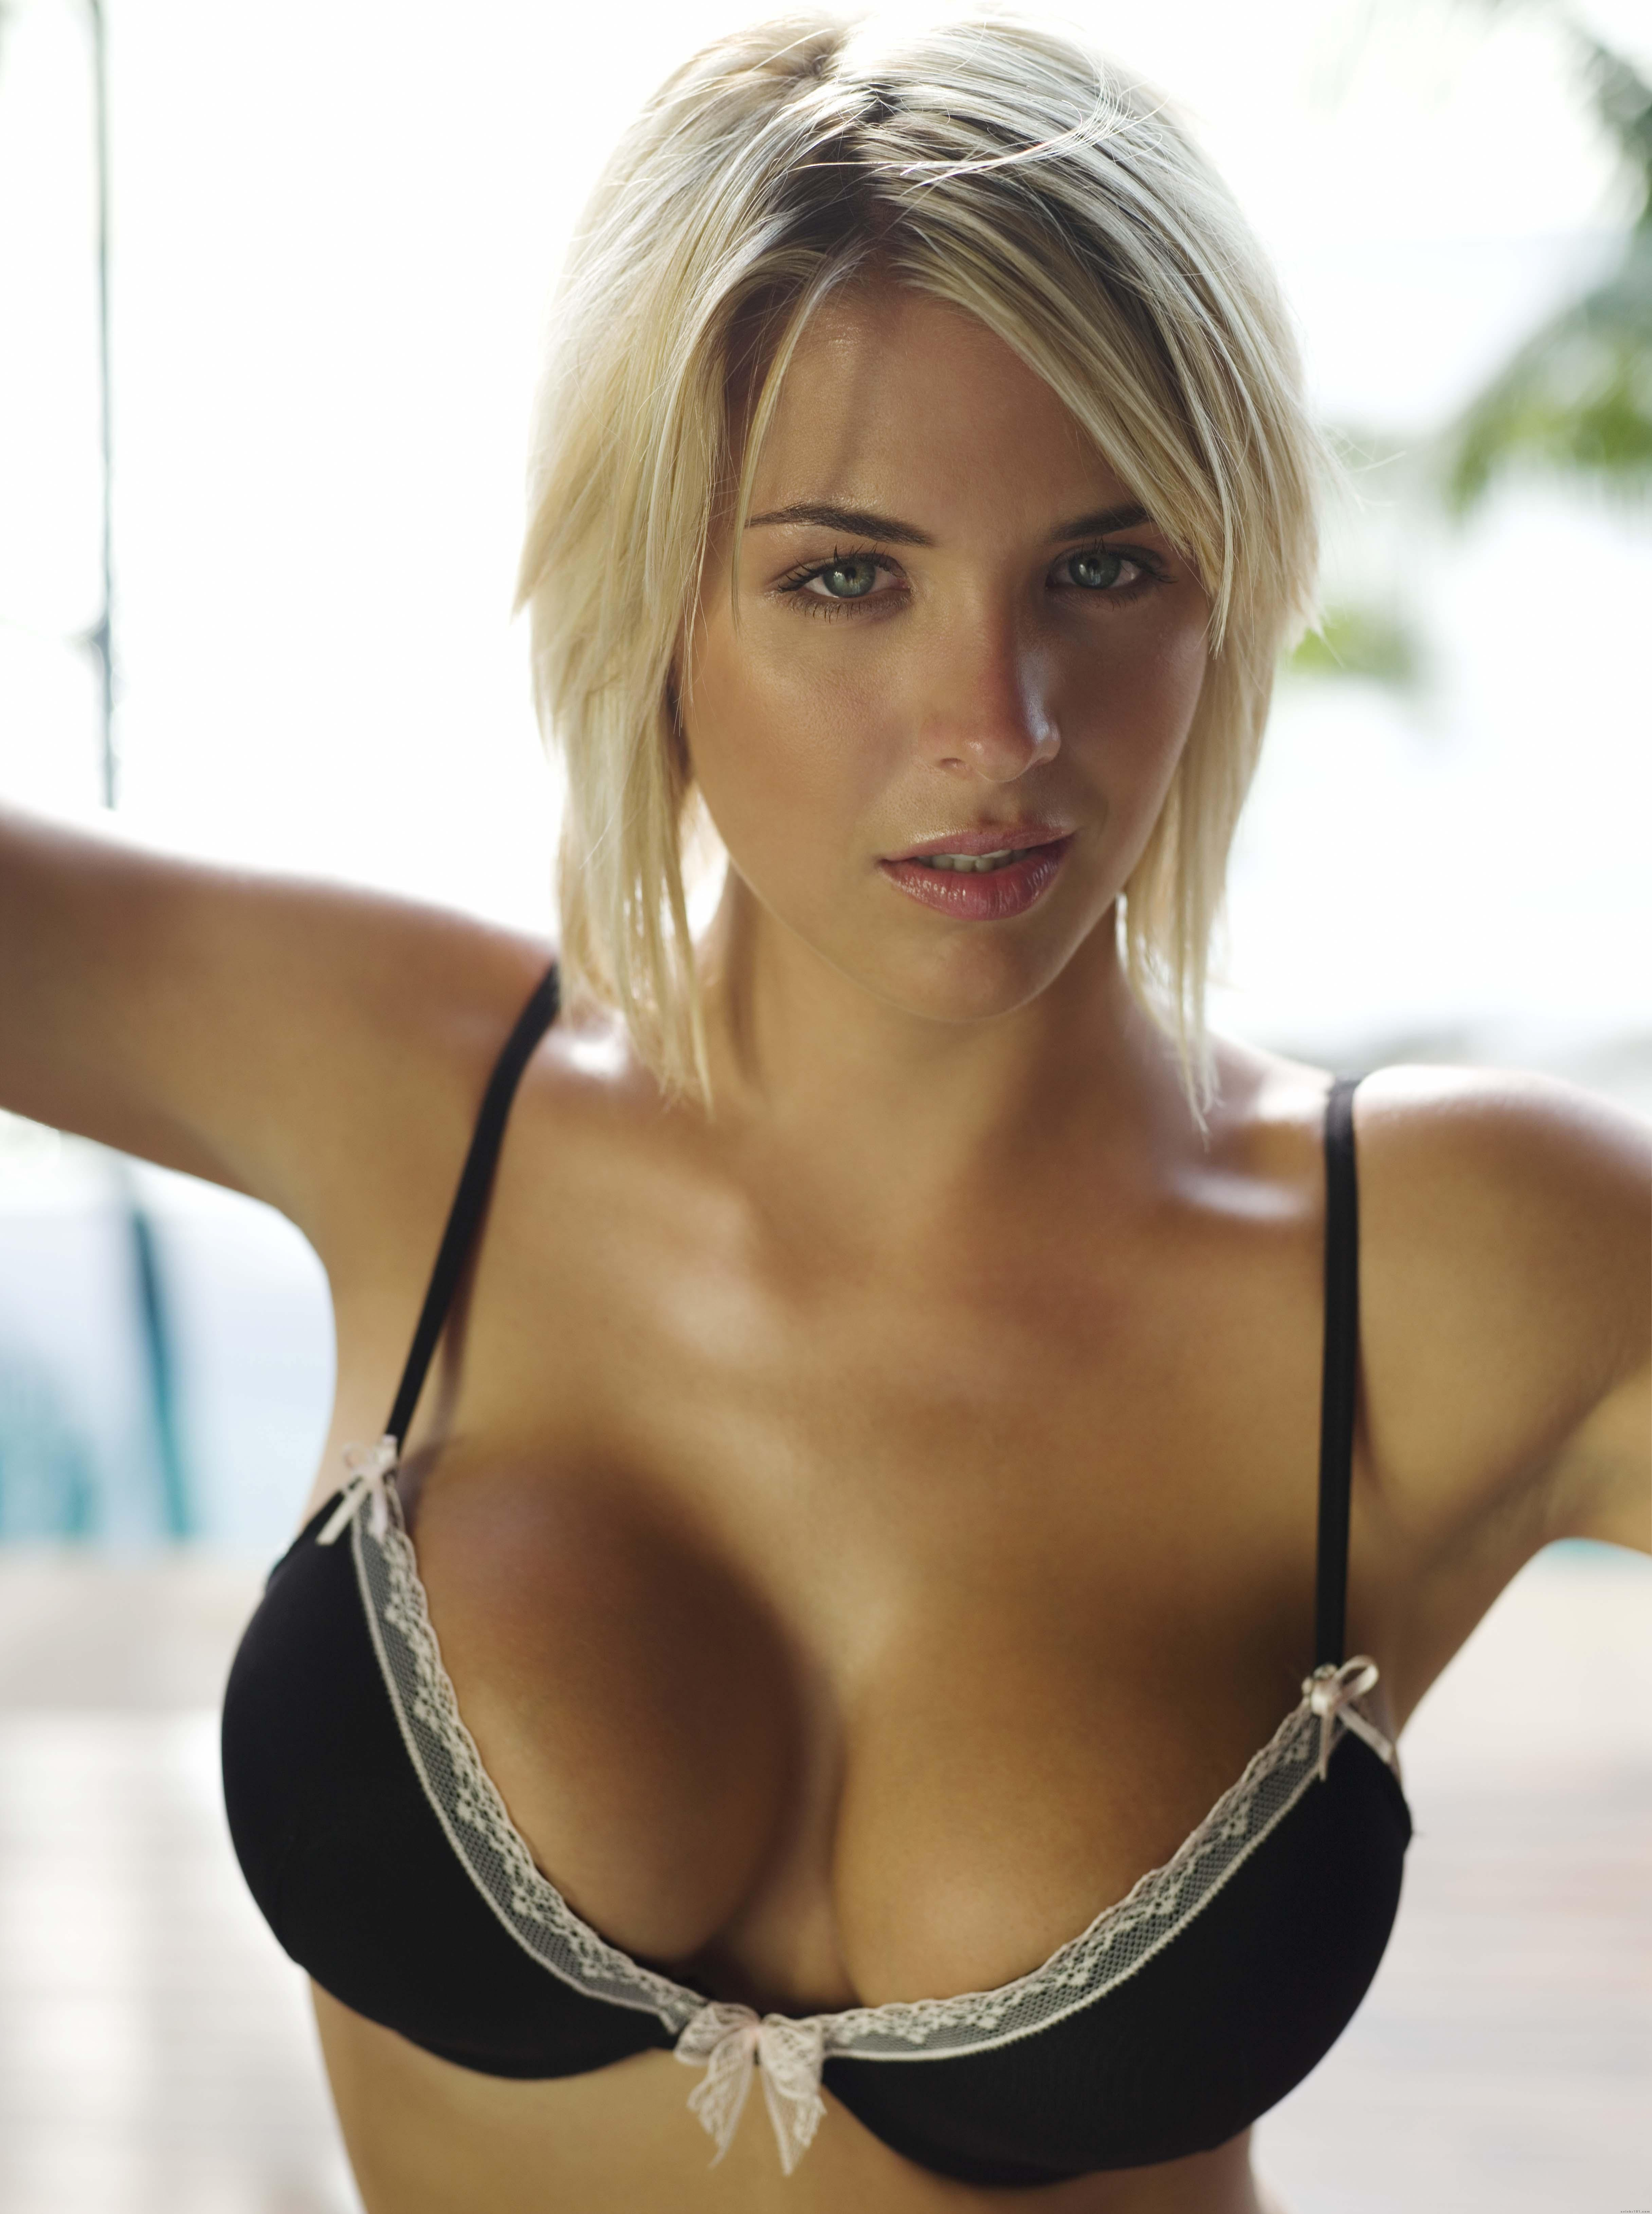 gemma atkinson photo gallery